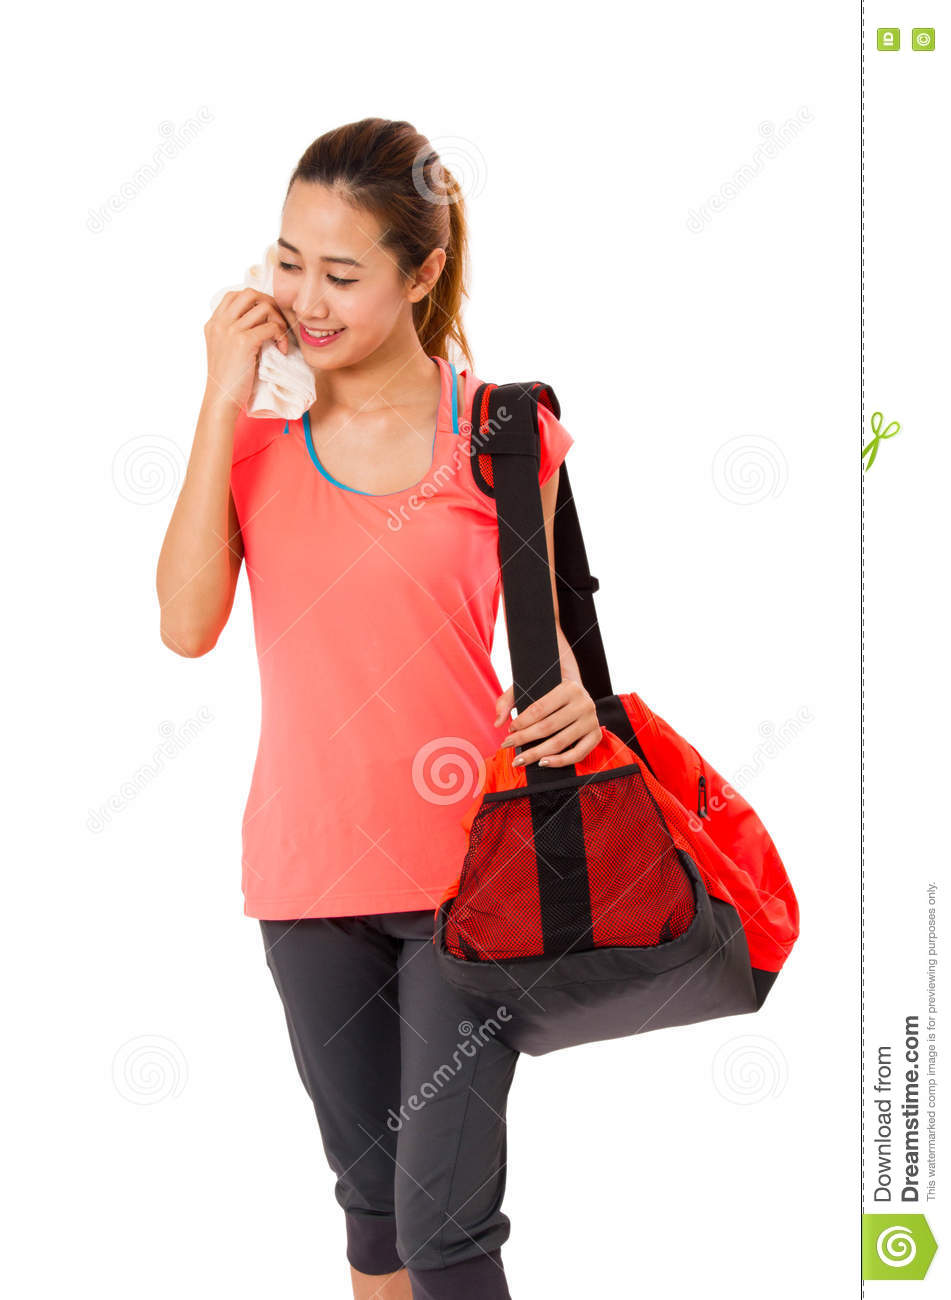 a41c4682918783 Asian Smiling fit young woman with gym bag standing ready for fitness  exercise.